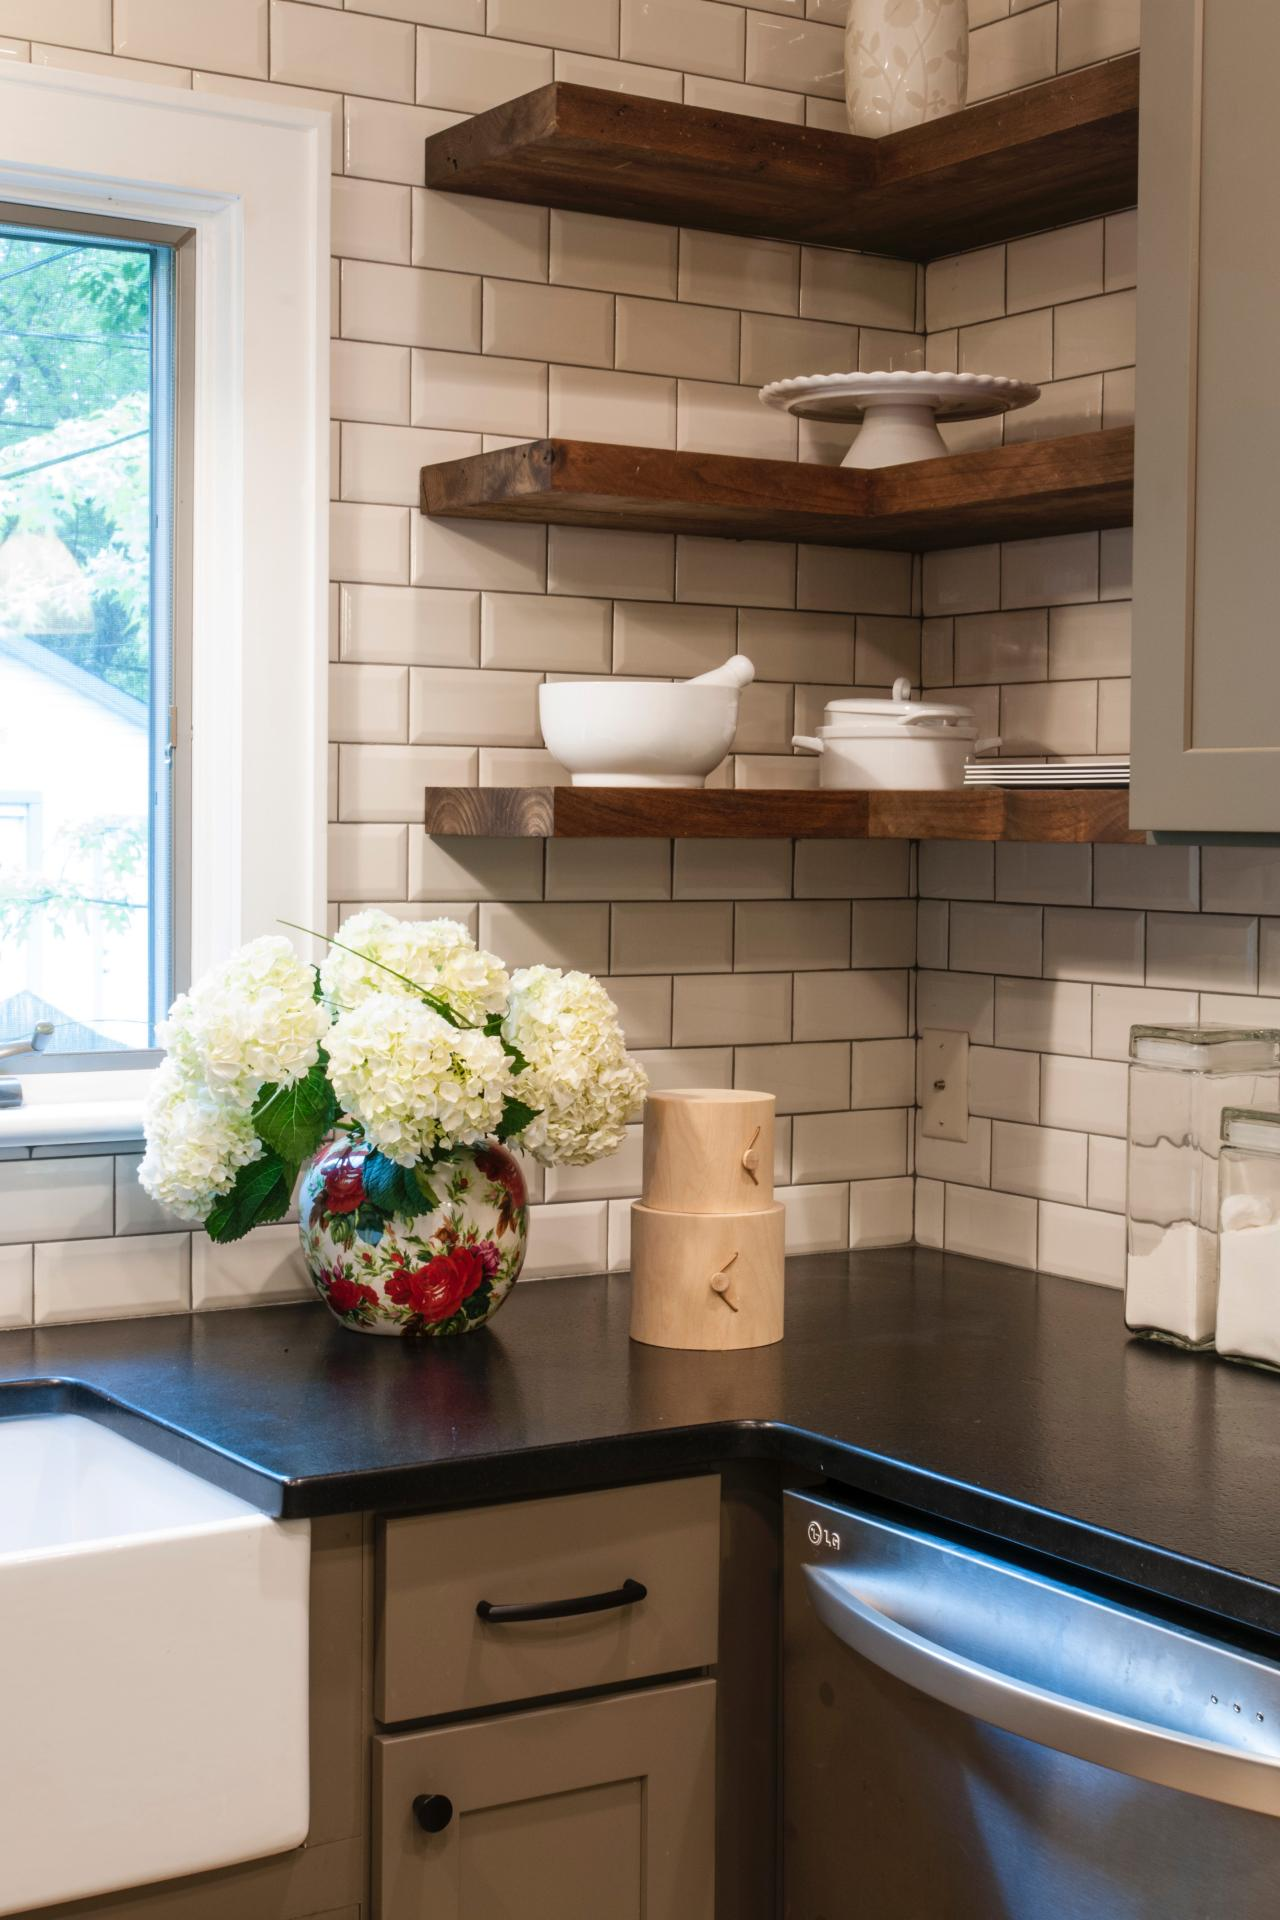 Lovely Design Of The Kitchen Areas With Corner Shelves Ideas With White Tile Wall Ideas With Black Marble Tops Ideas